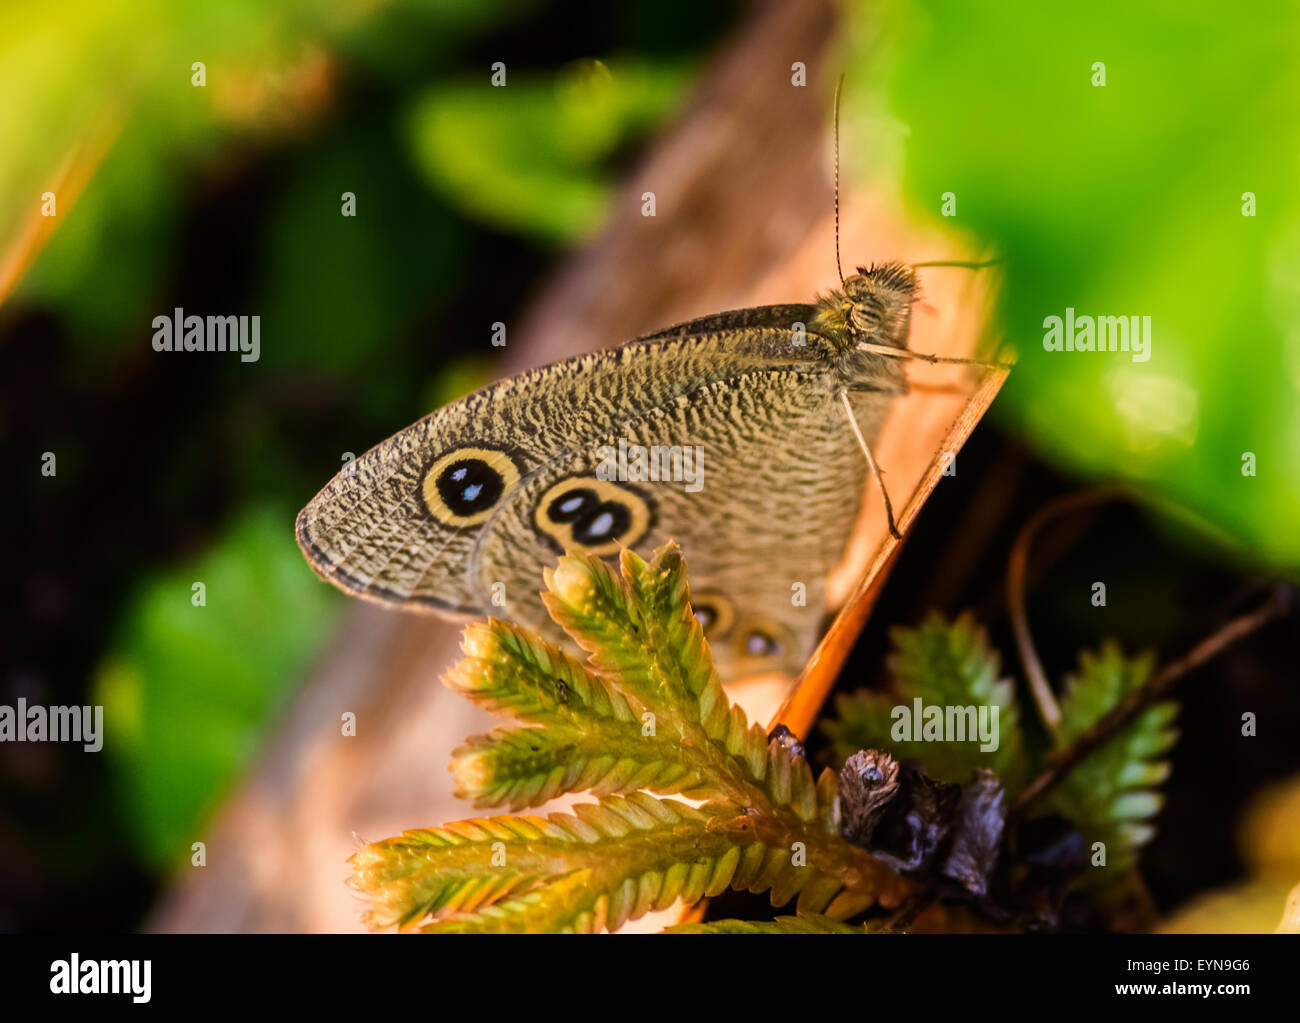 Small brown butterfly Common Fivering, Ypthima balduson grass during morning with copy space - Stock Image